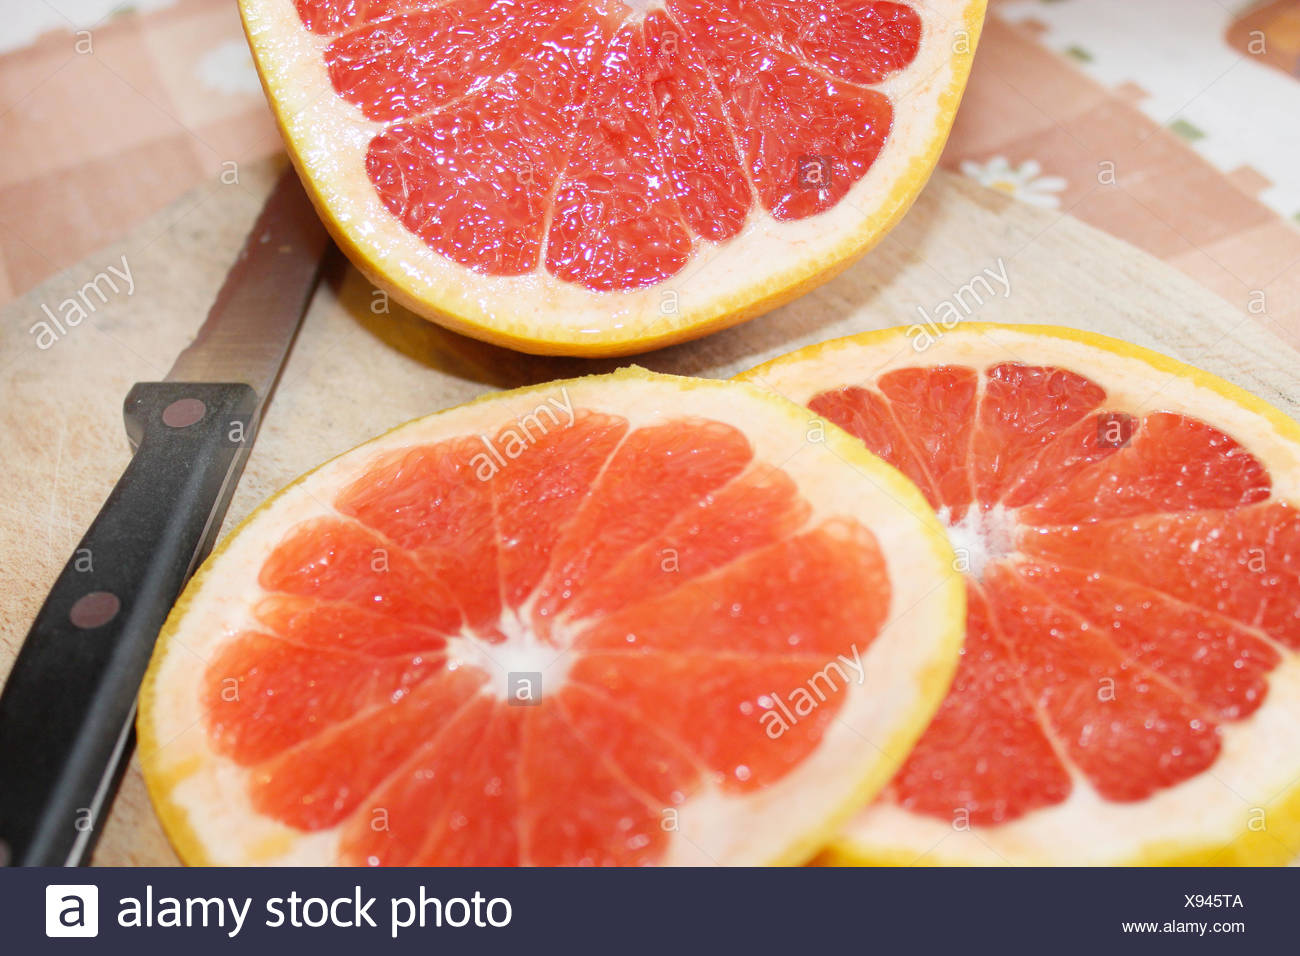 grapefruit bright red and cut by segments - Stock Image